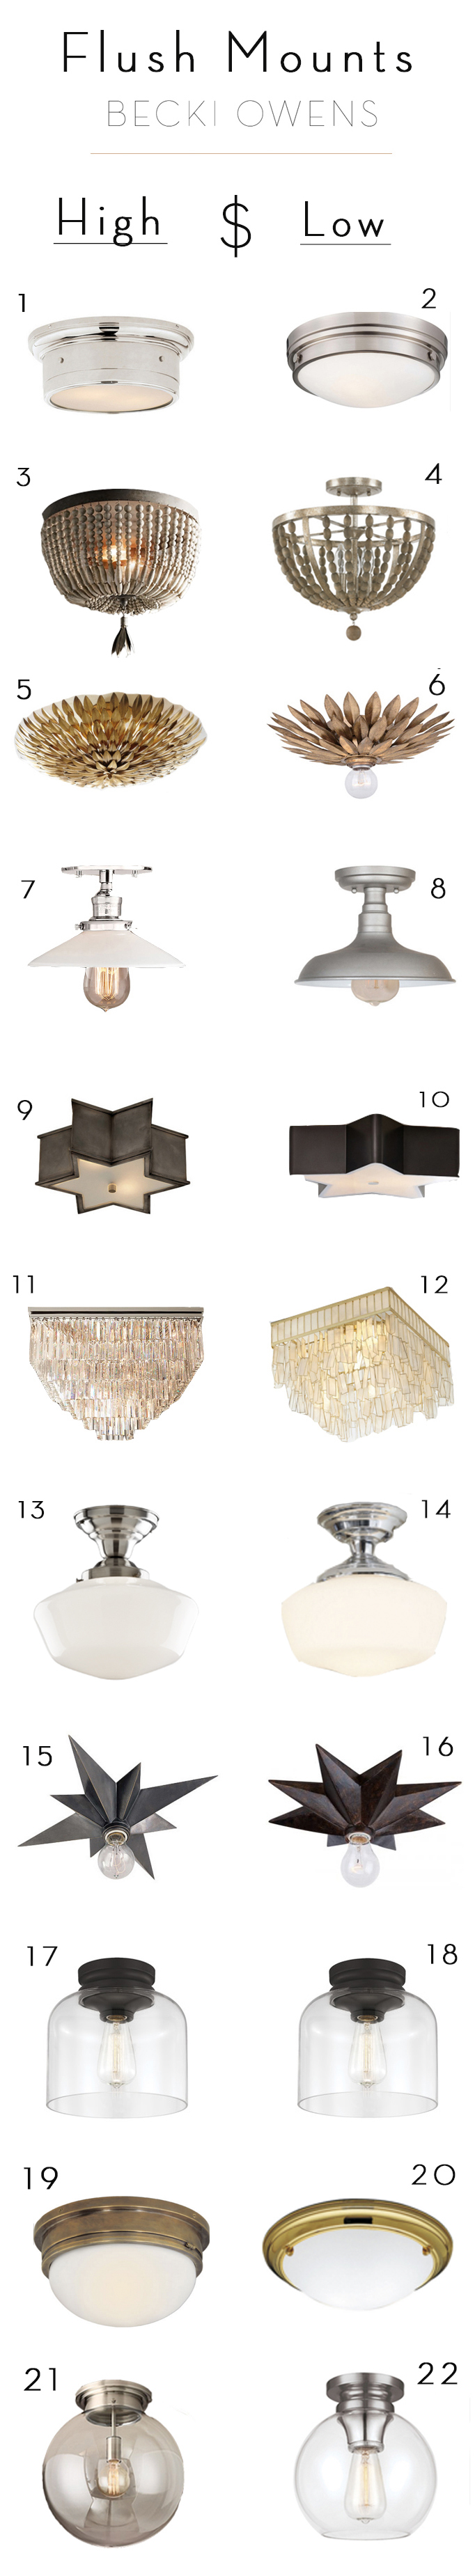 splurge and save flush mount lighting becki owens